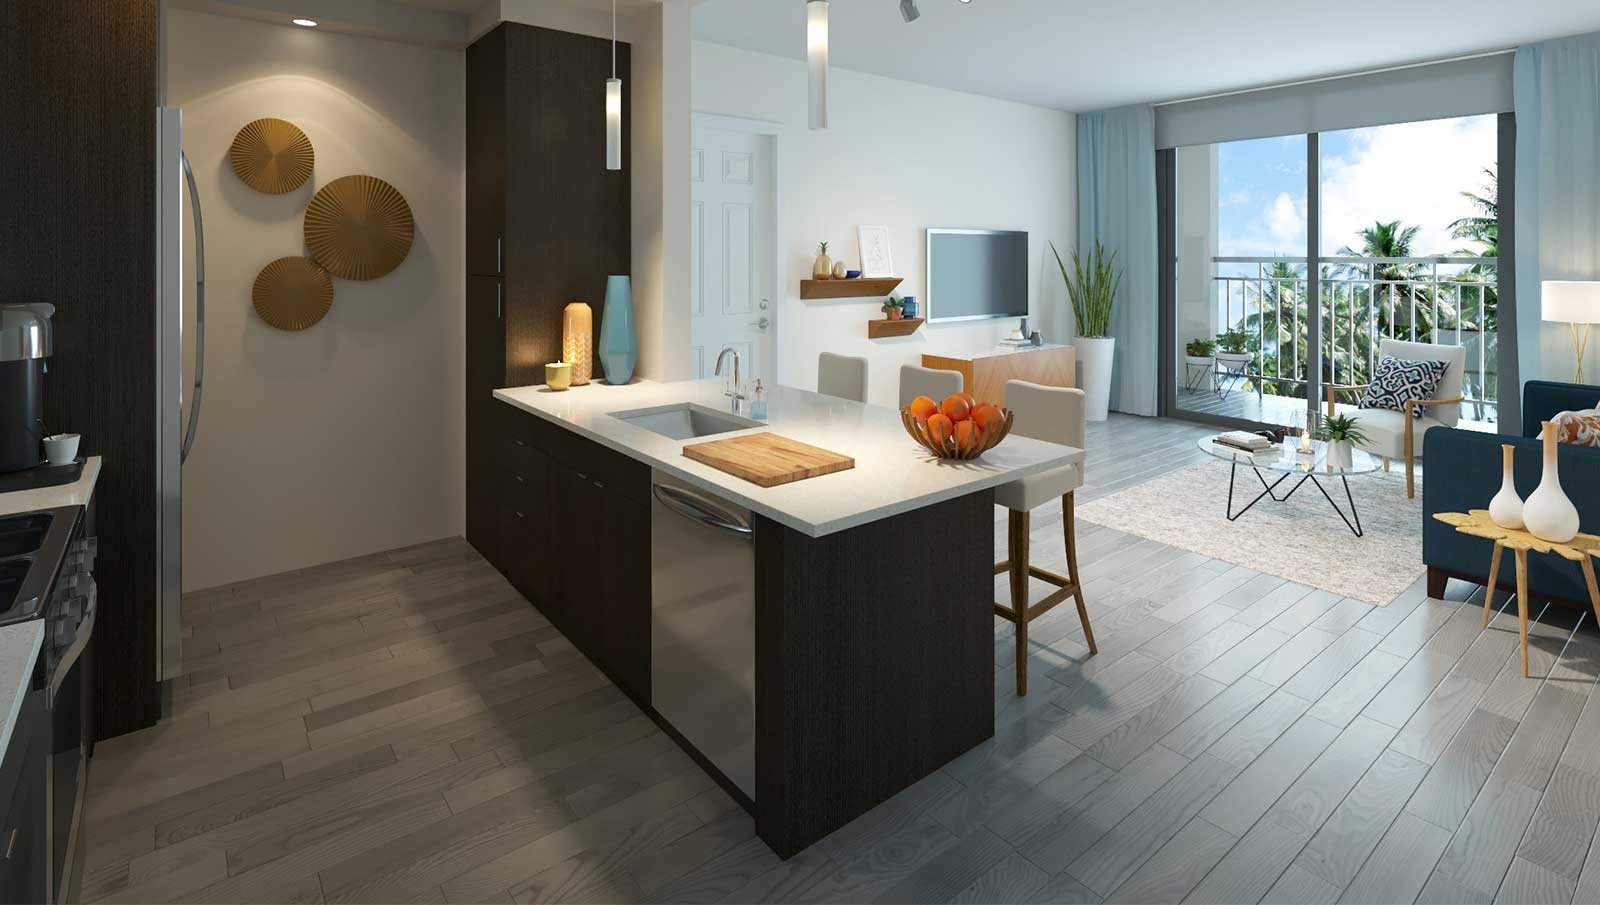 View of Apartment Kitchen